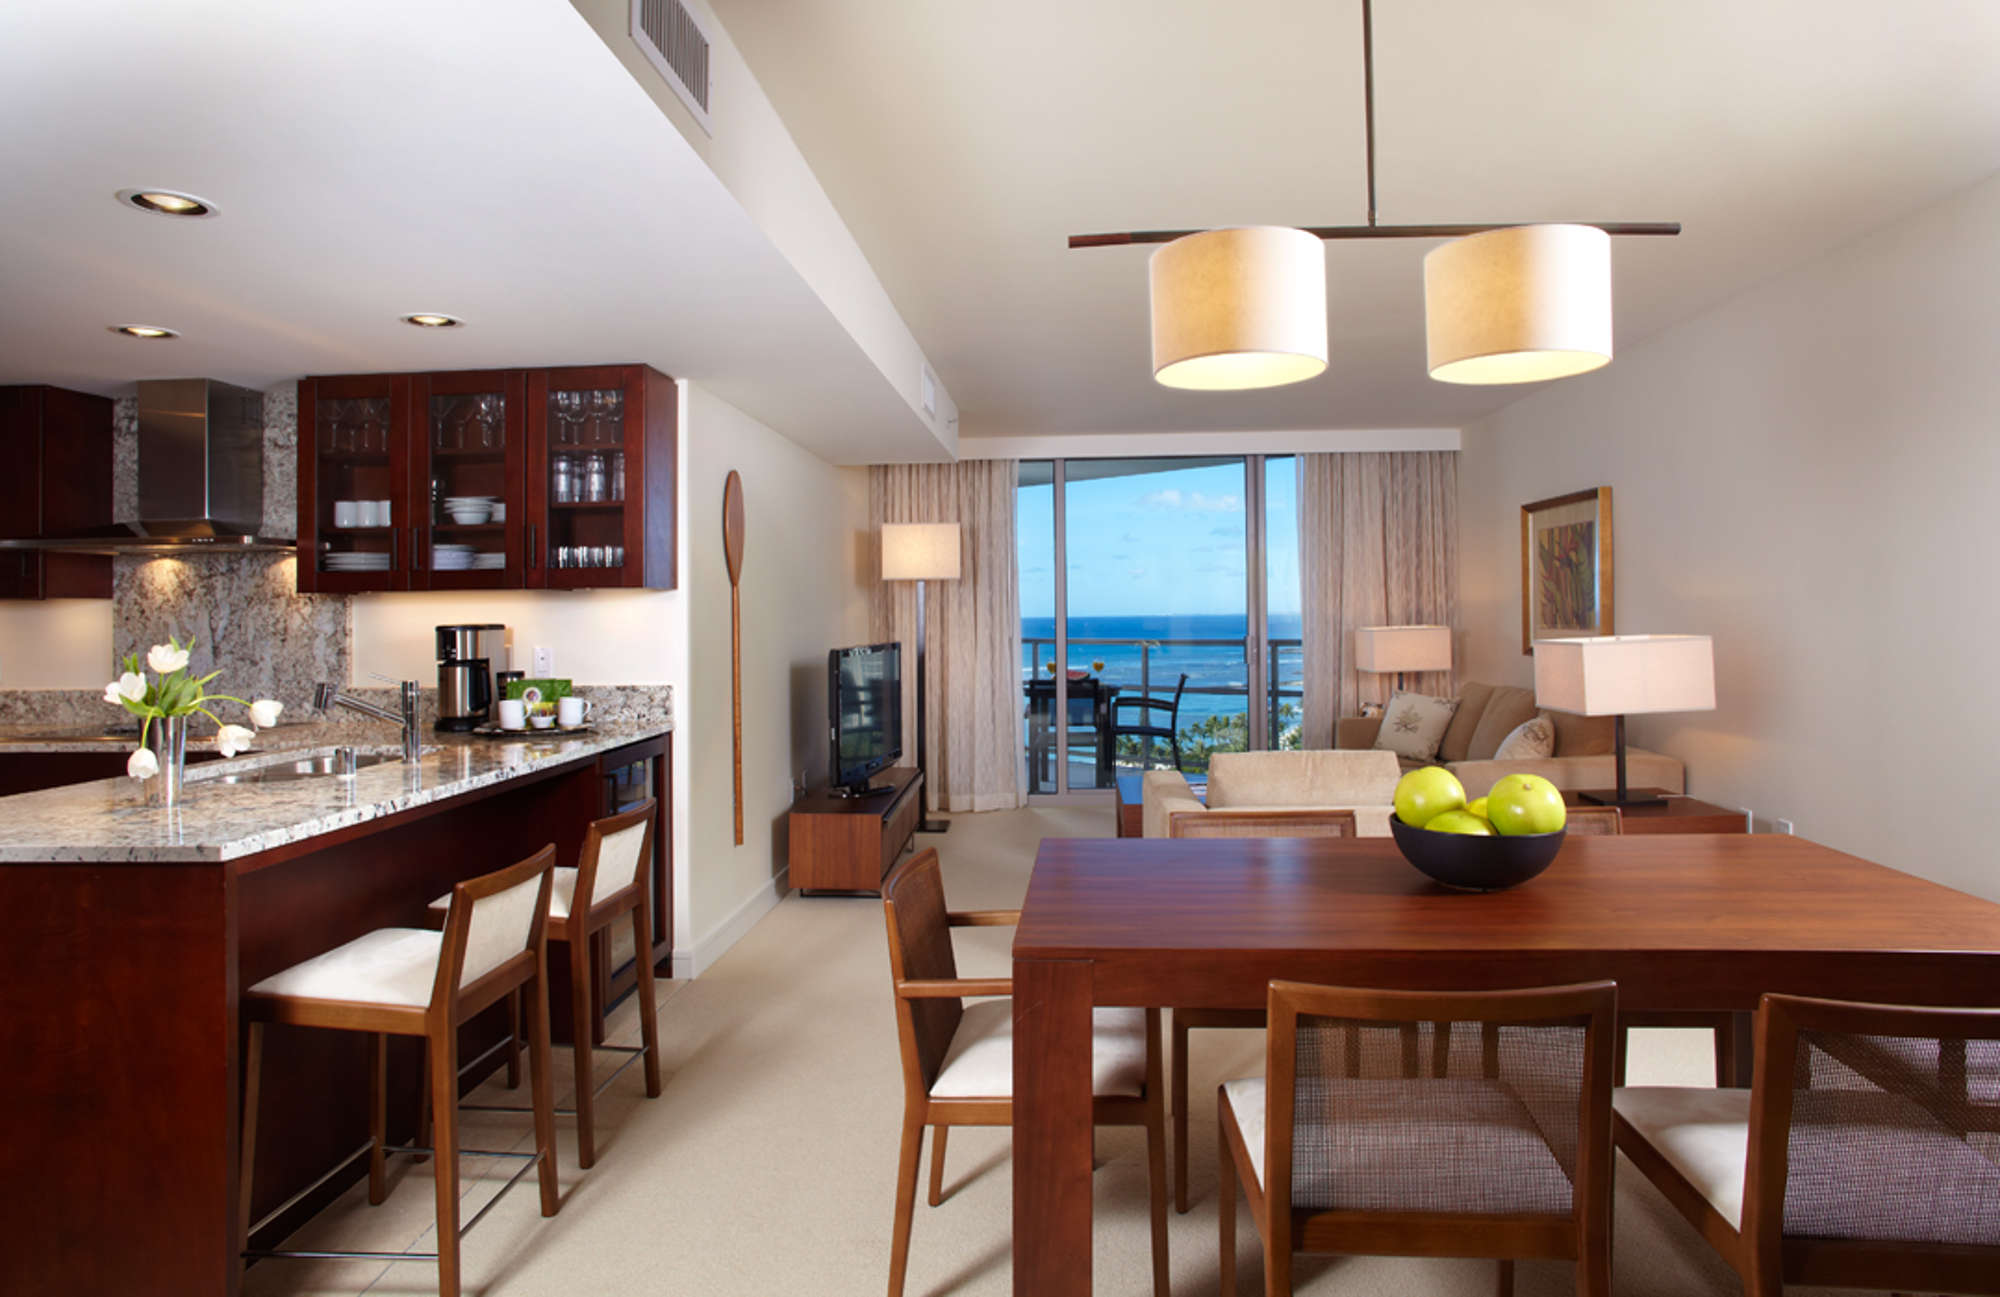 marvelous Waikiki Hotels With Kitchens #2: Waikiki Hotels With Kitchens Zitzat